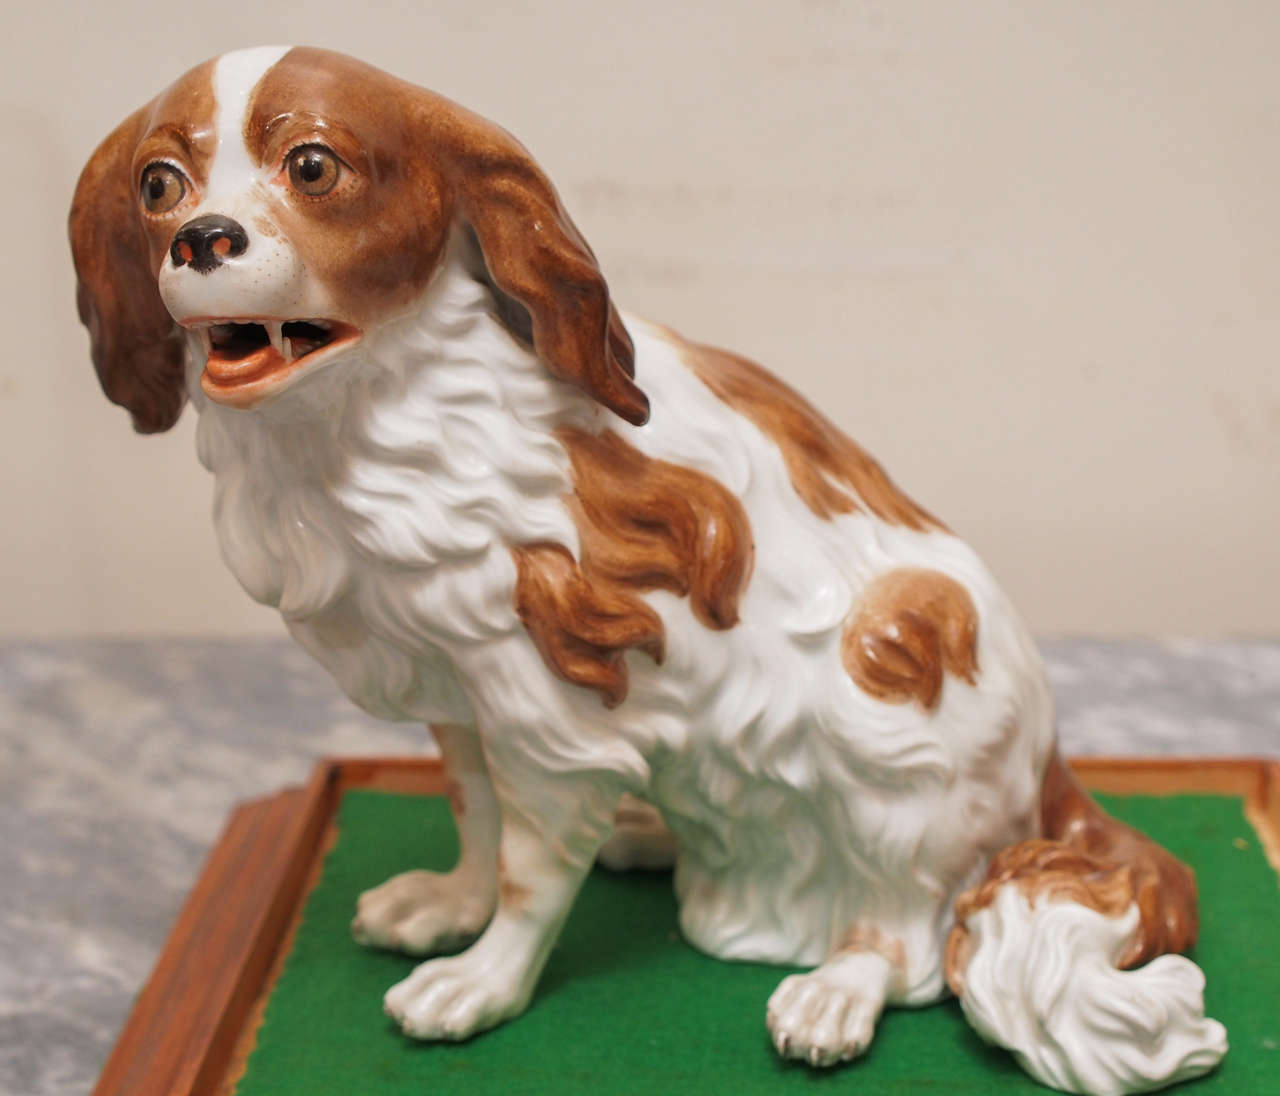 Vienna Porcelain figure of Cavalier King Charles Spaniel with beehive mark now ensconced in a custom glass and copper box with a wooden base.